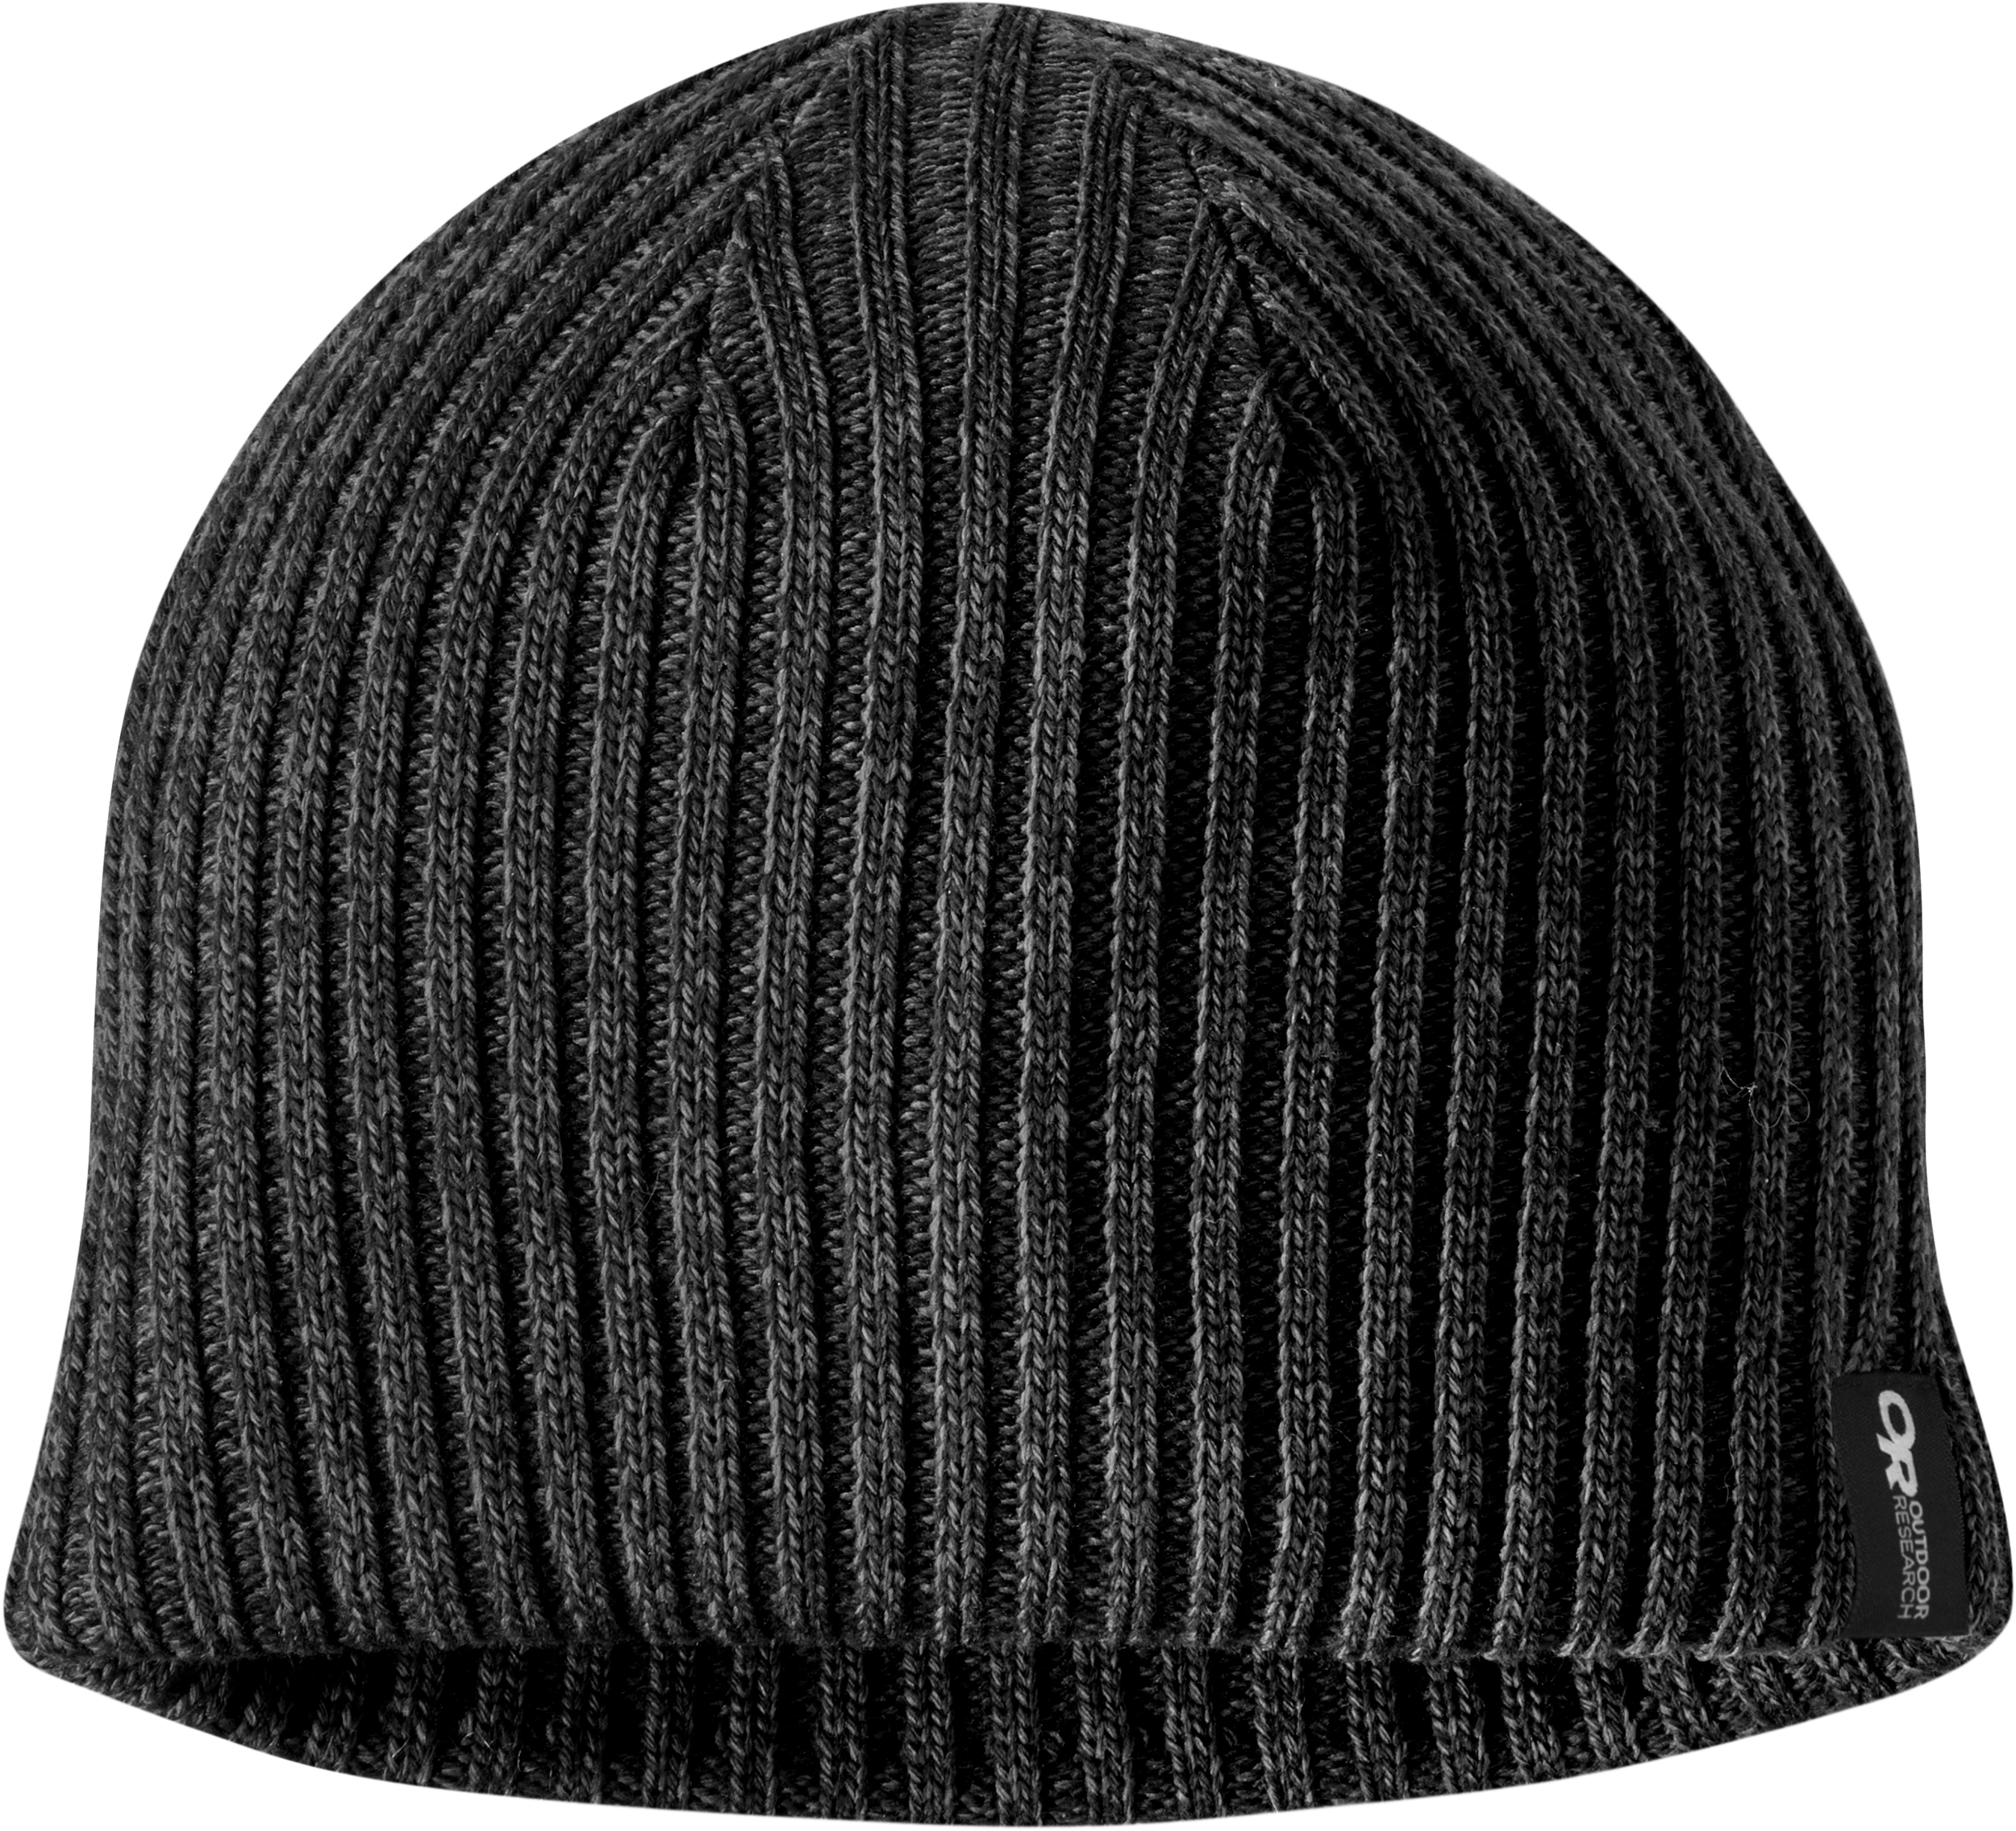 e0161ab5dc9980 Hats and toques for travel